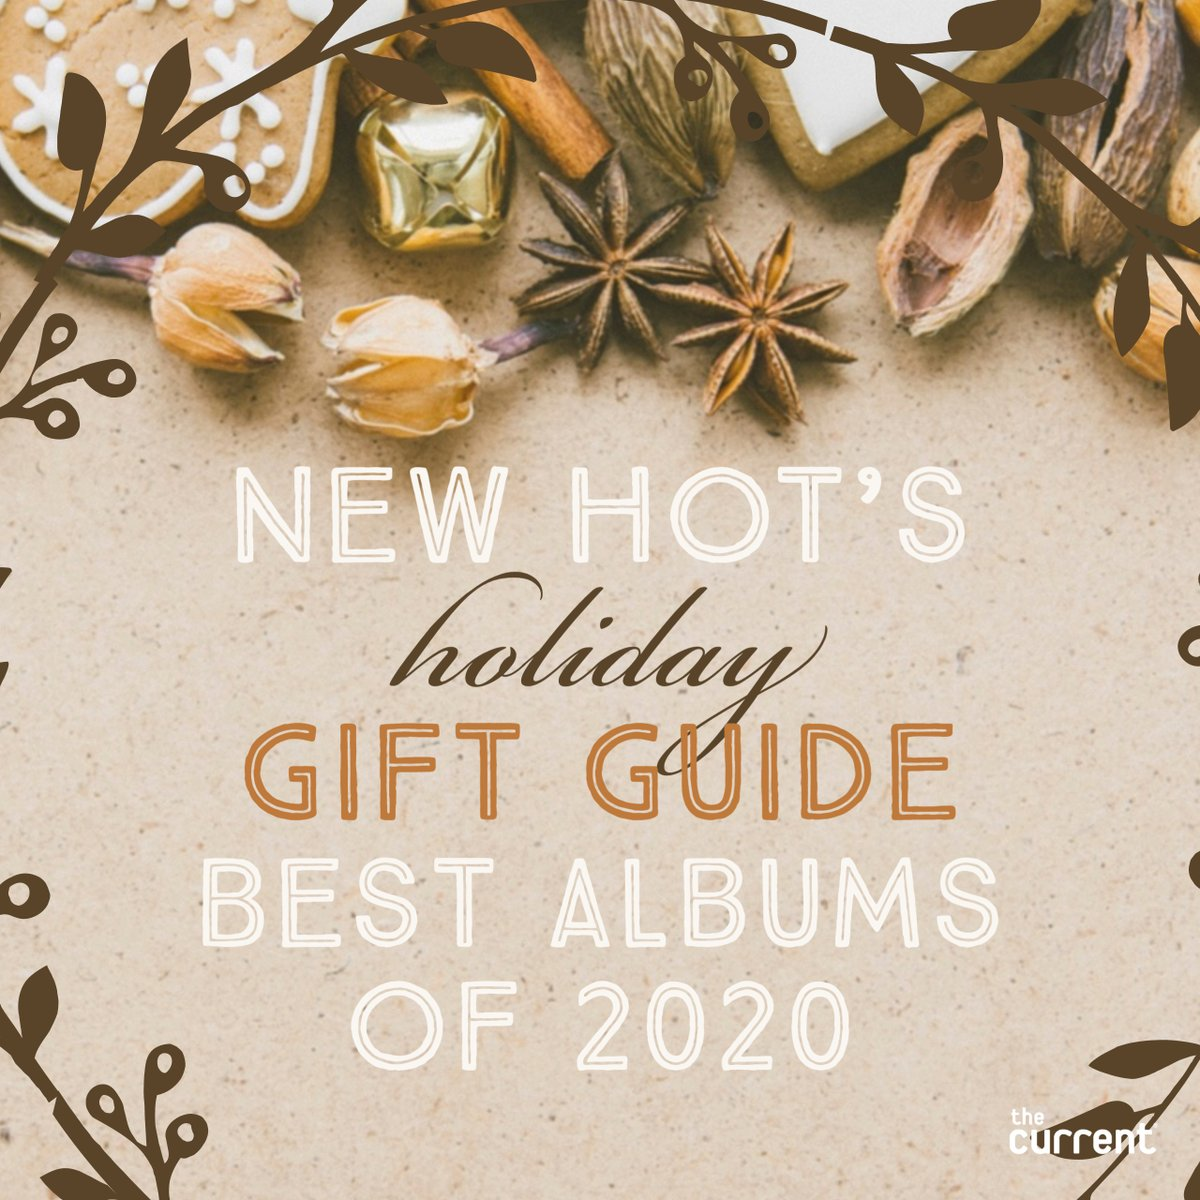 This week on New Hot, @dbsafar presents part 2 of New Hot's holiday gift guide to the best albums of 2020. Listen Monday starting at 10 p.m. Central. thecurrent.org/listen